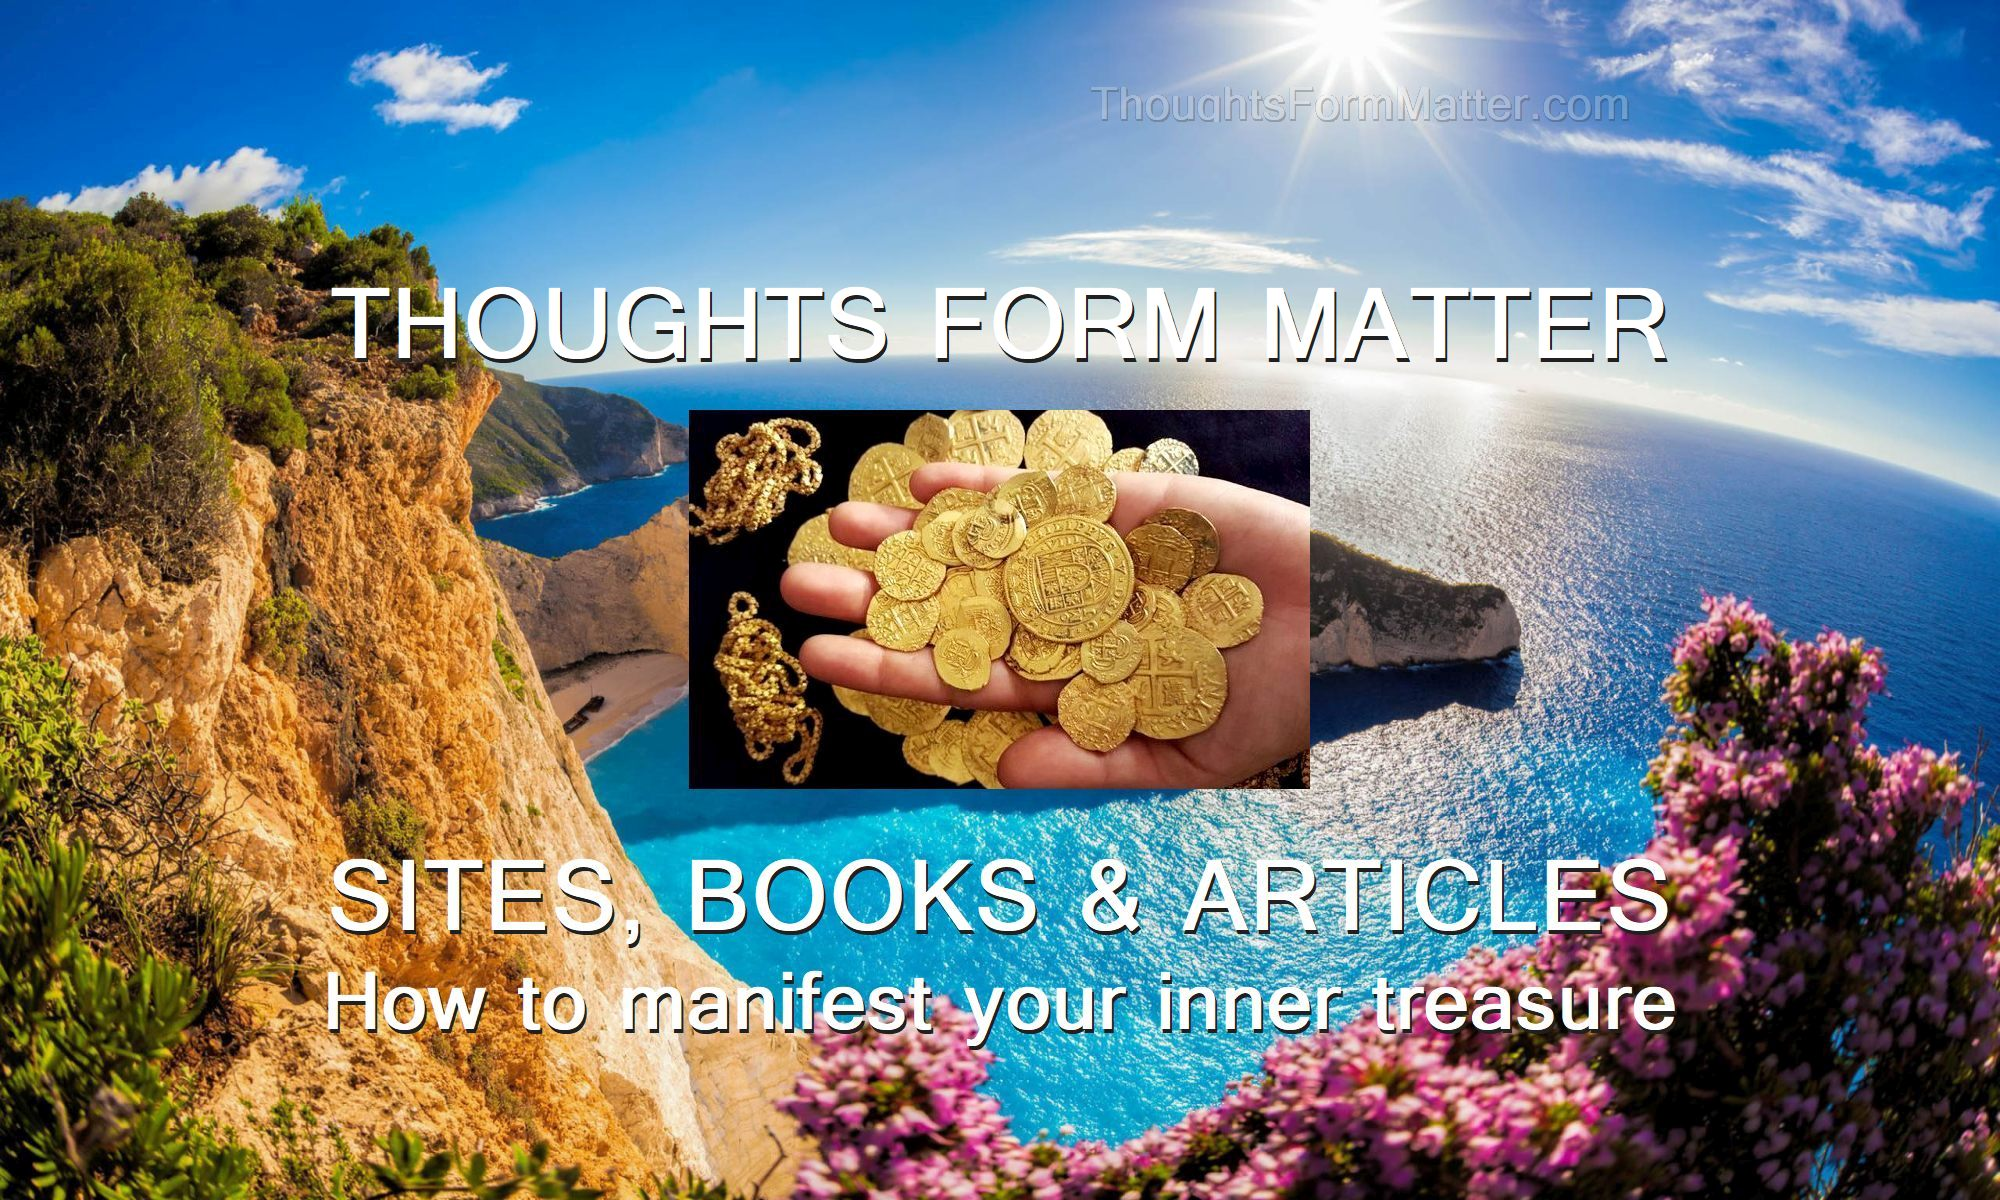 gold-paradise-depicts-result-Mind-body-Metaphysical-Philosophy-Books-Metaphysics-Consciousness-Science-self-Improvement